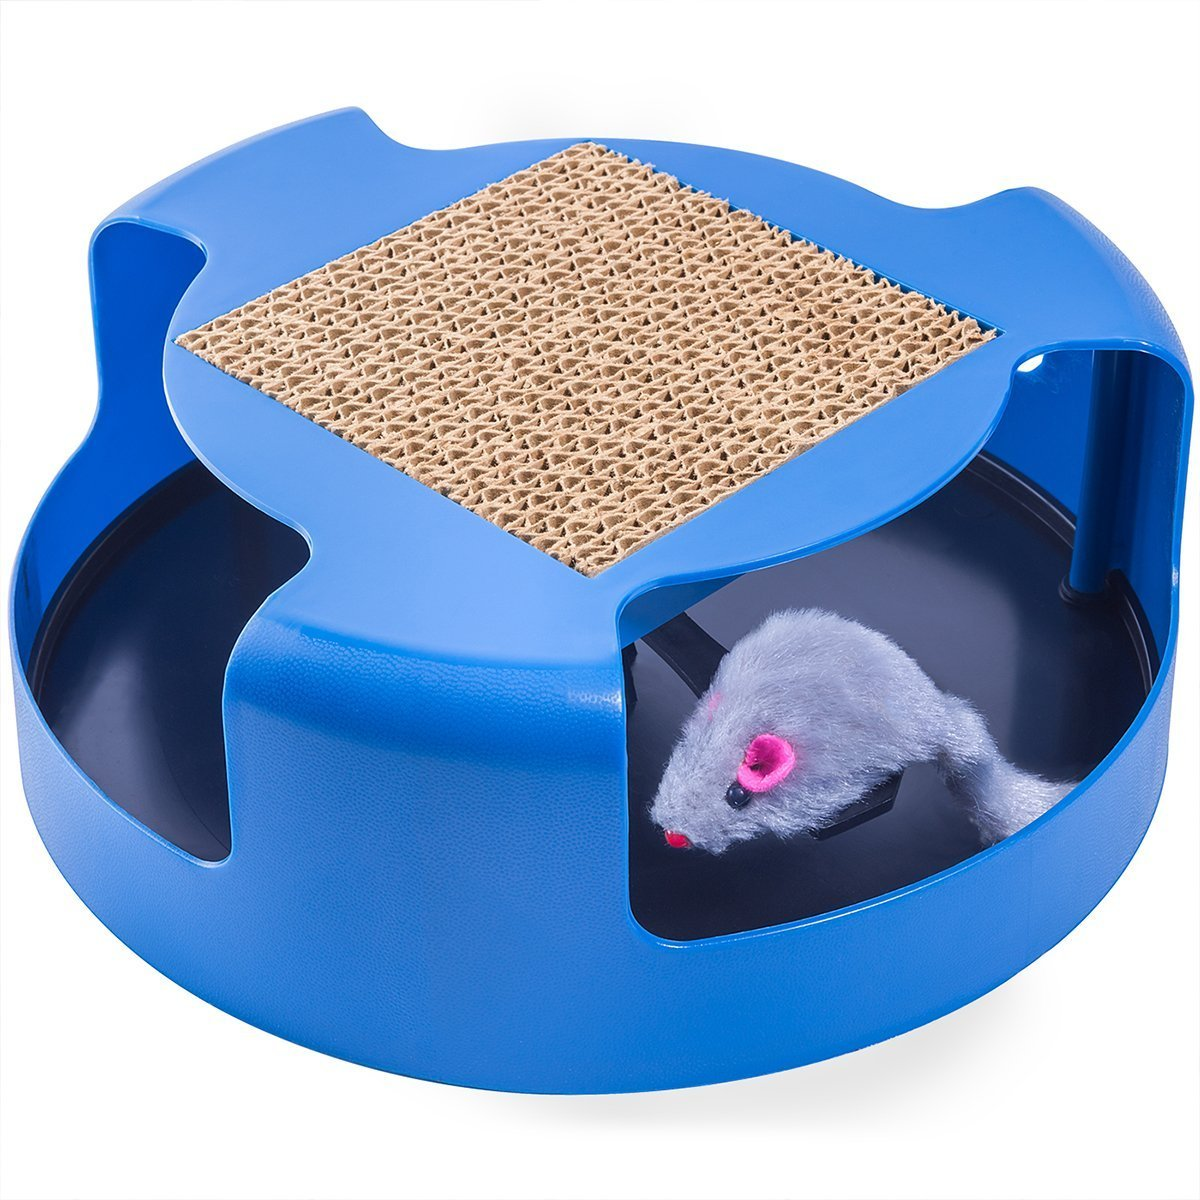 OxGord Interactive Training Exercise Cat Kitten Mouse Play Toy with Turbo Scratching Post Pad